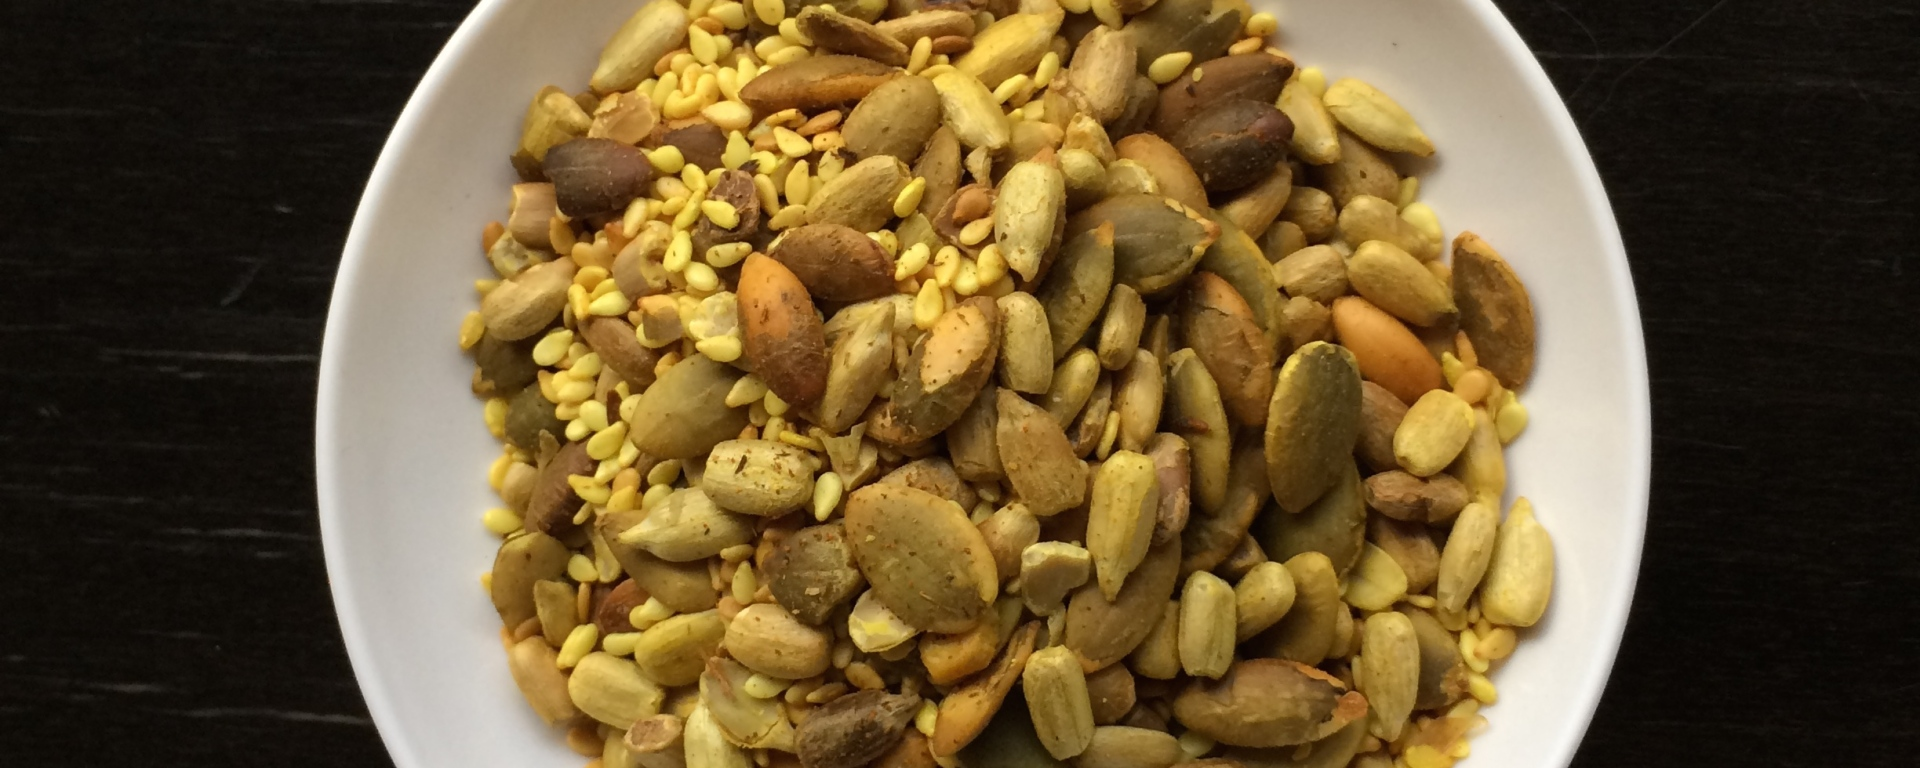 Toasted-seed-mix